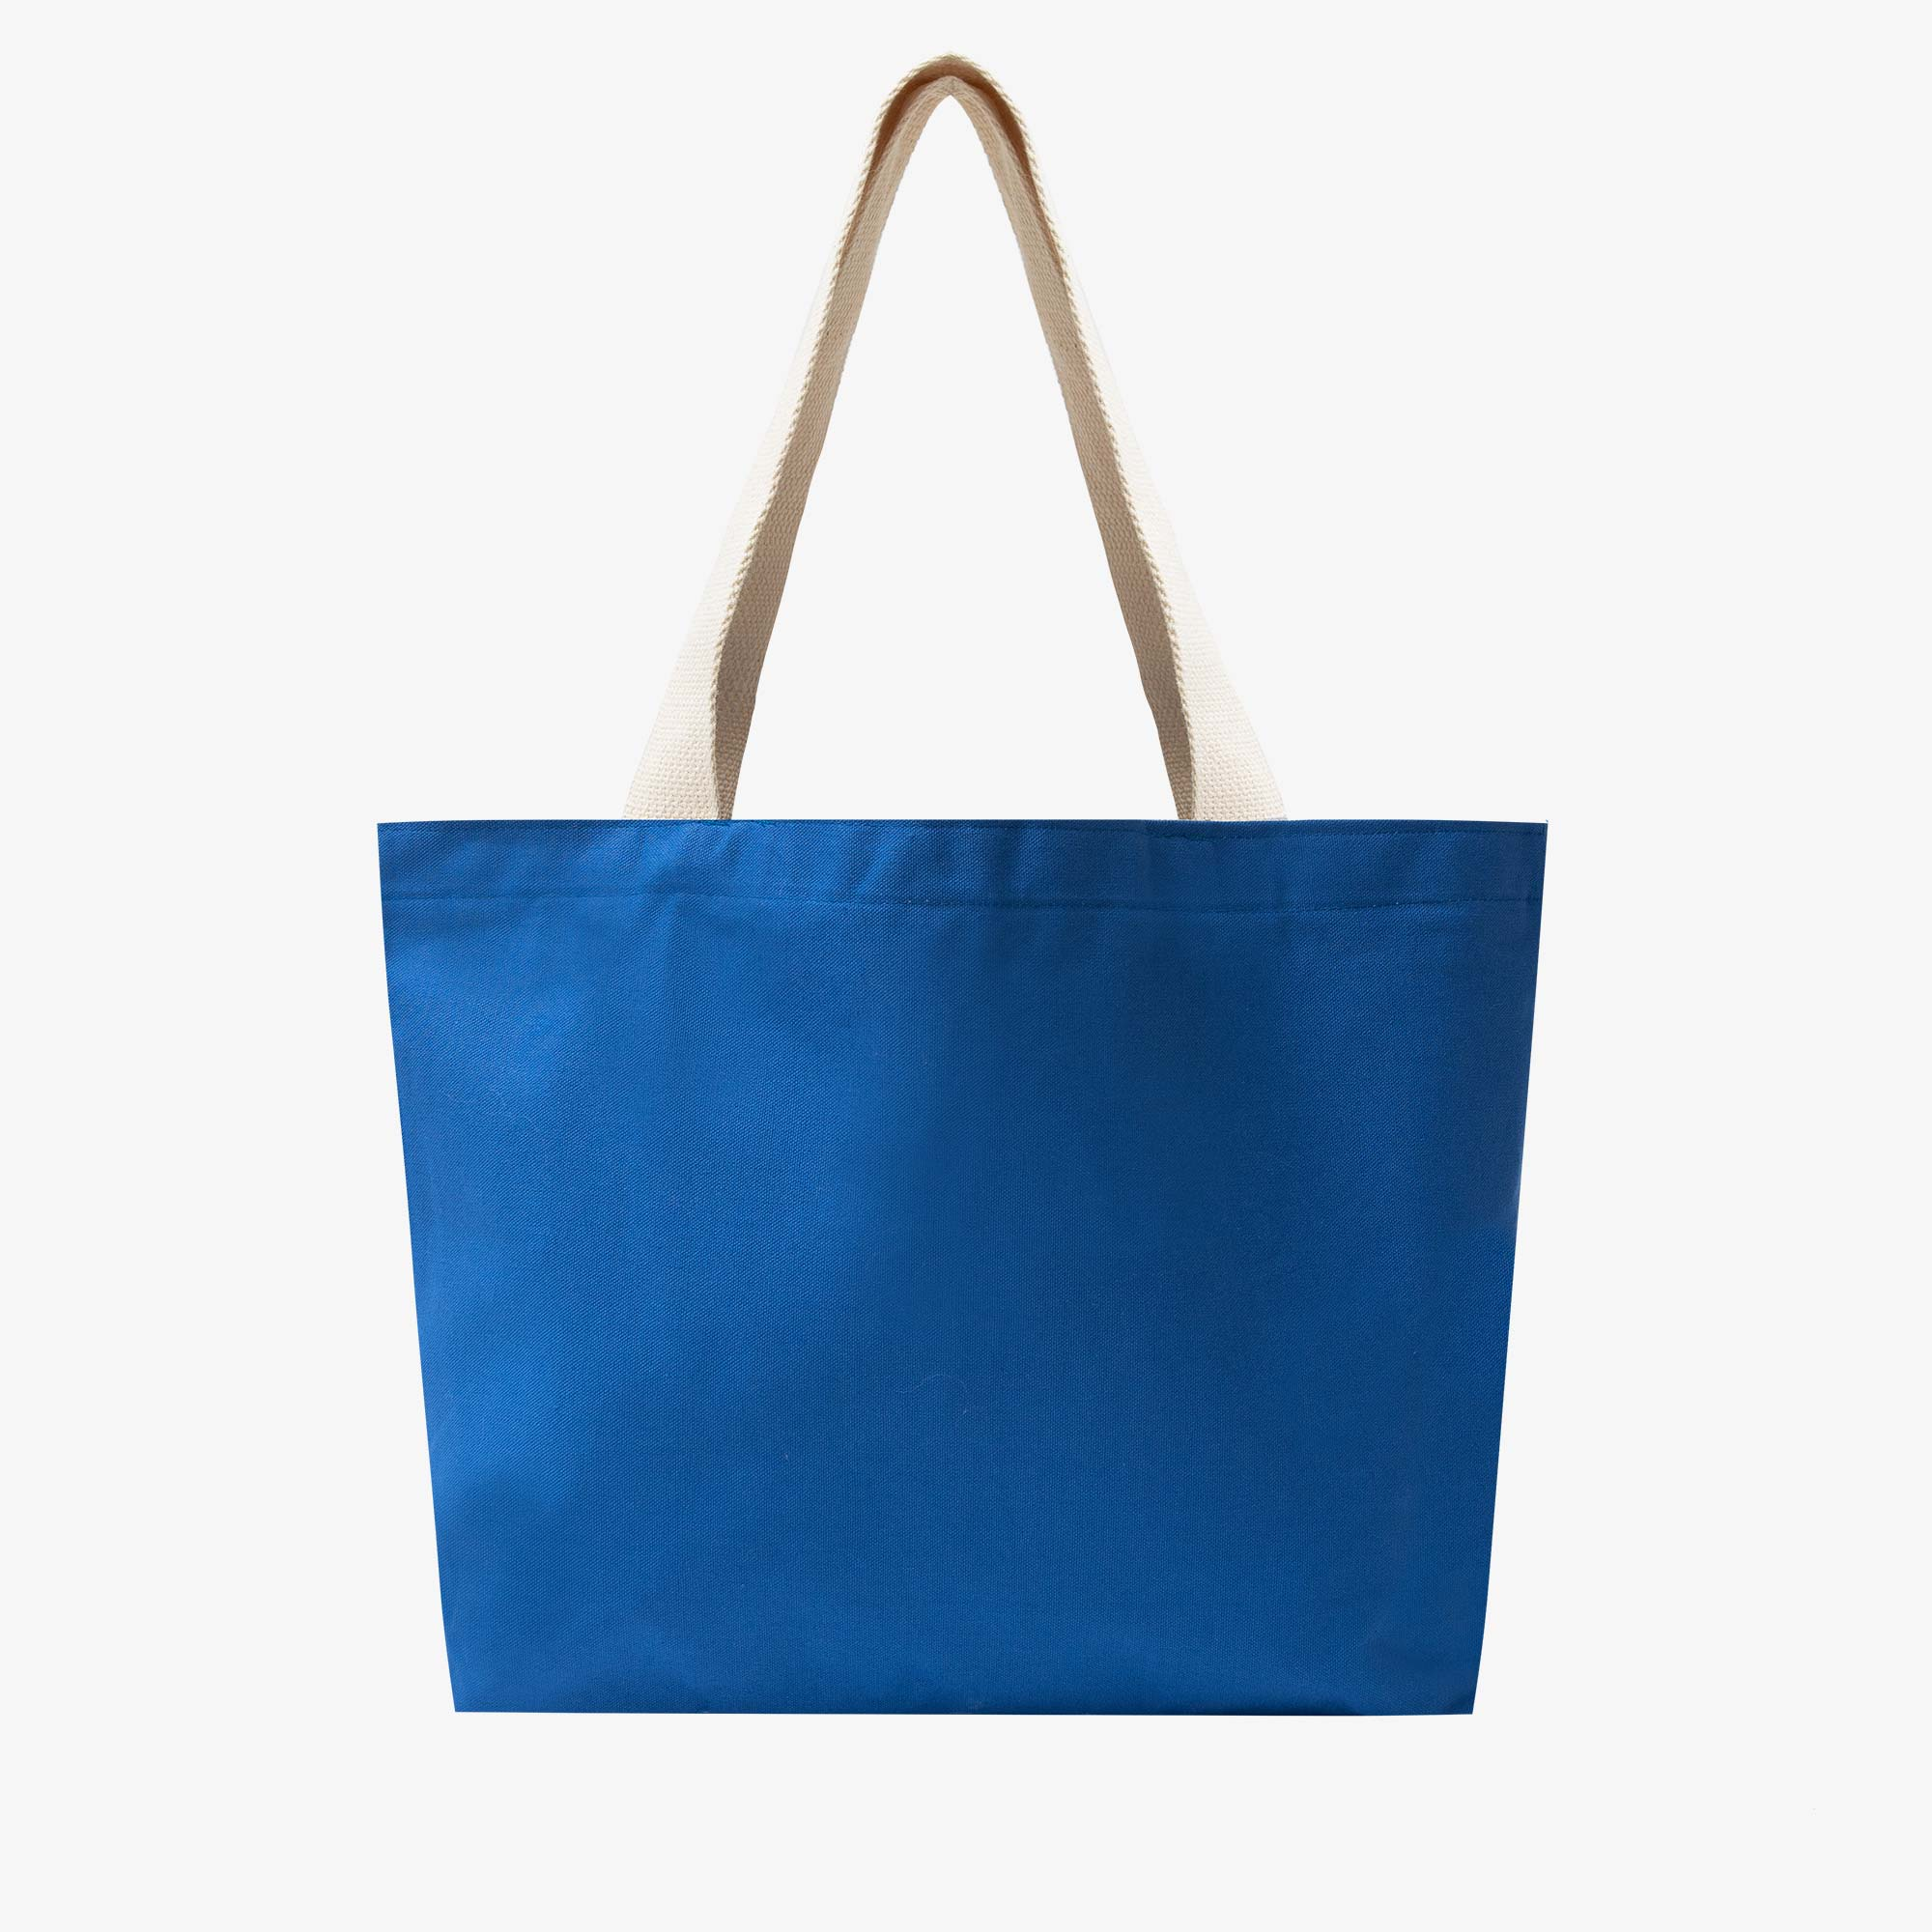 Powers Supply Corrosion Tote Bag - Canvas / Blue 4